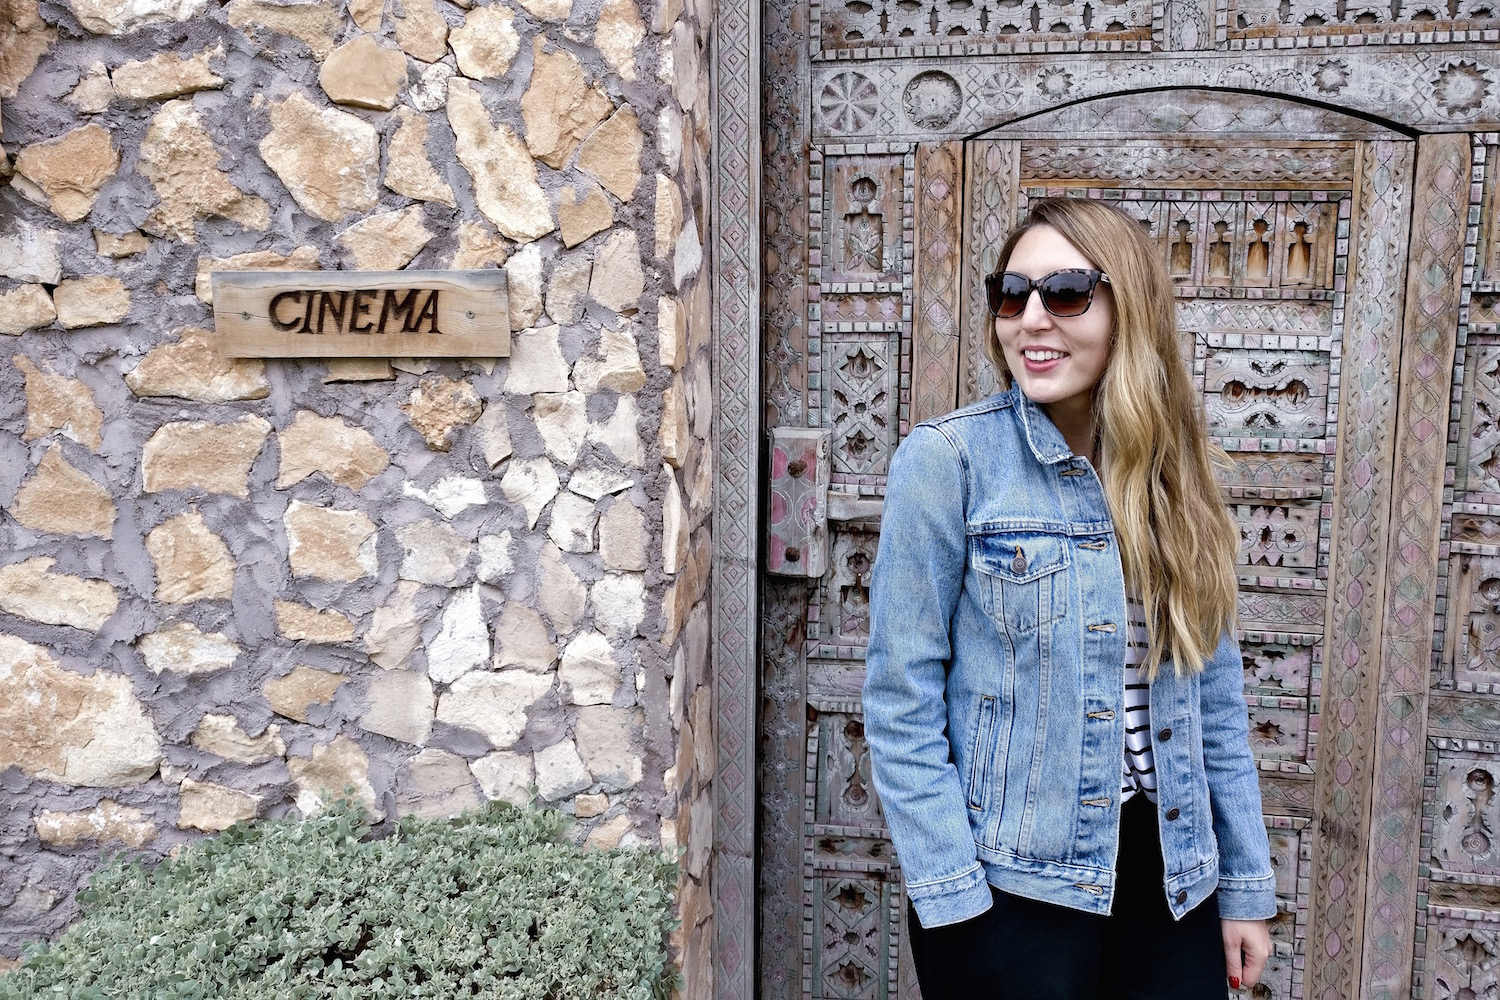 Eire Pollard wearing a Levi's denim jacket and Hush trousers stands outside the cinema room at Hotel Capaldi, Marrakech, Morocco | Wolf & Stag